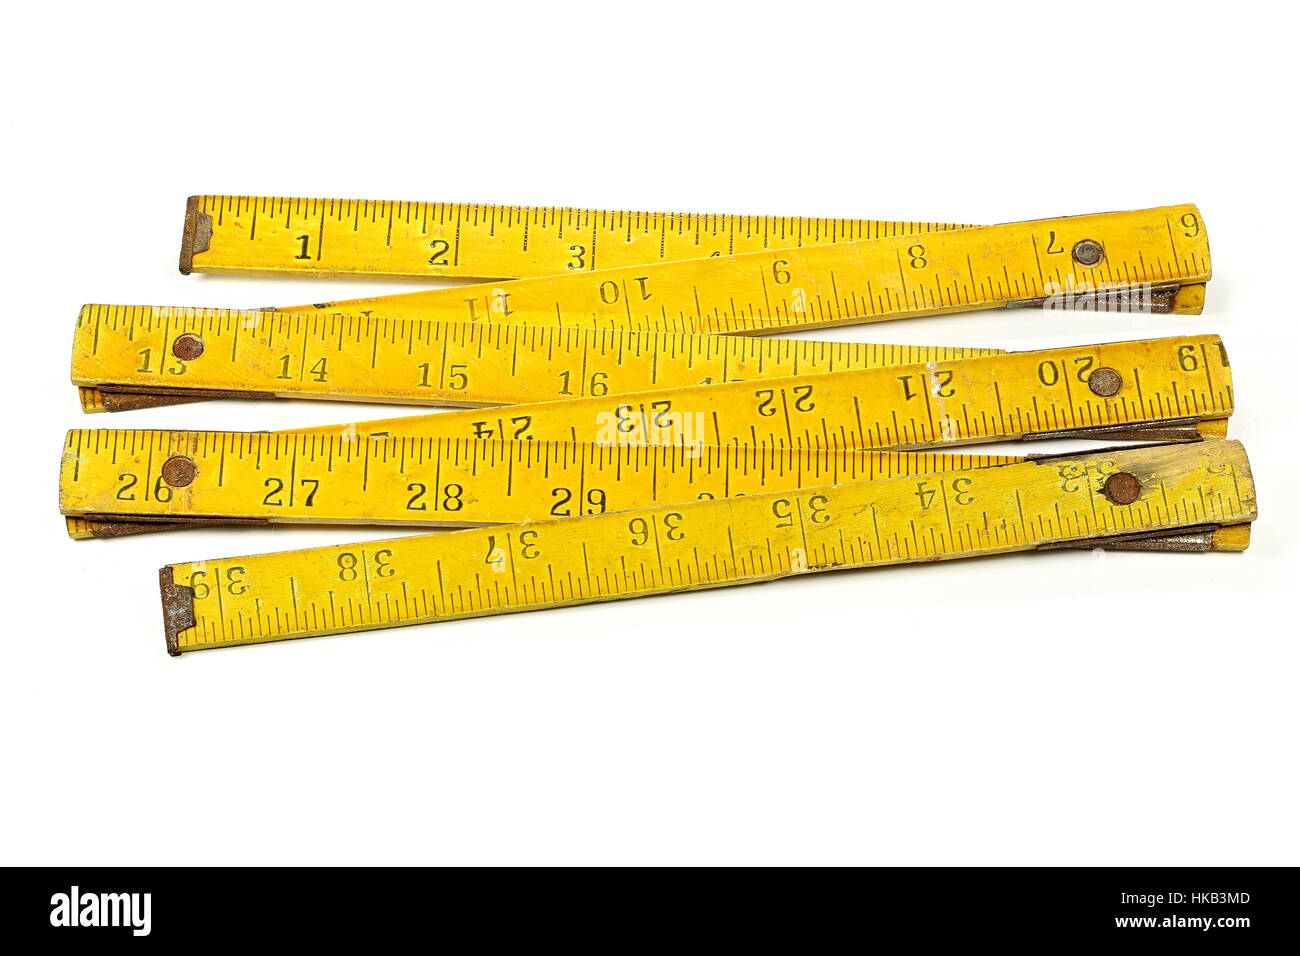 vintage 1 meter yardstick (inch unit) isolated on white background - Stock Image